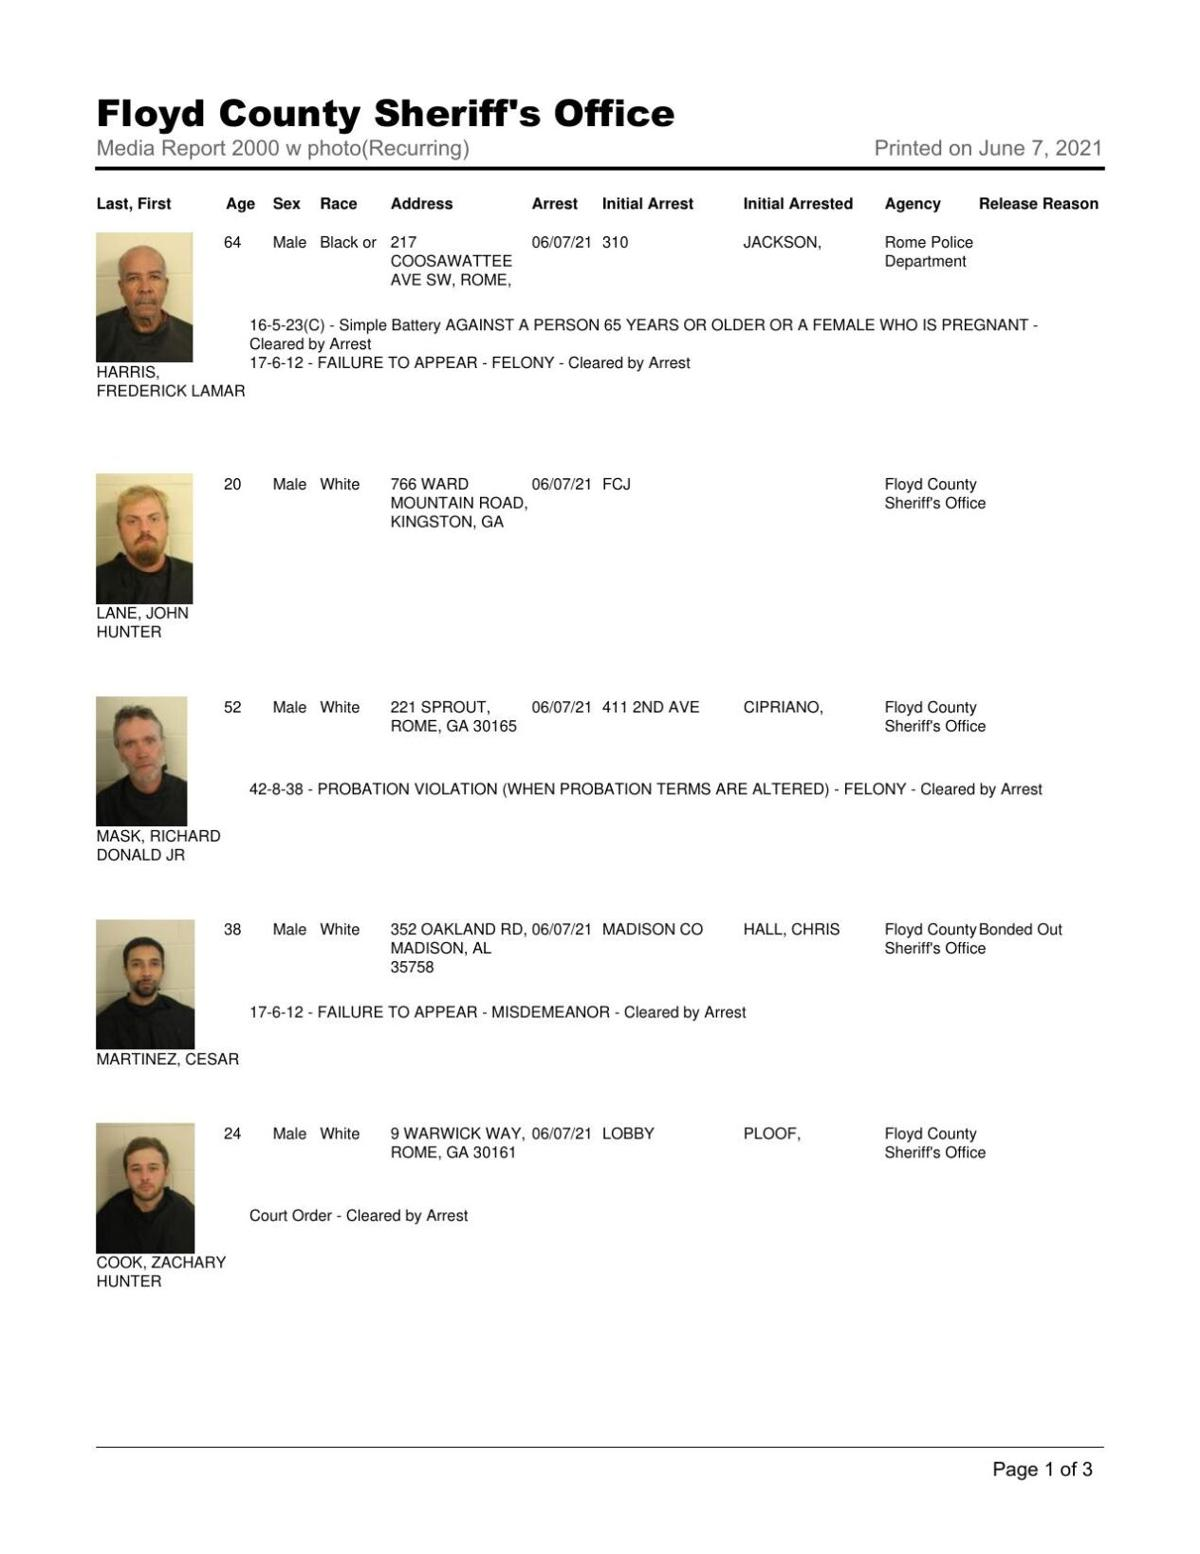 Floyd County Jail report for Monday, June 7